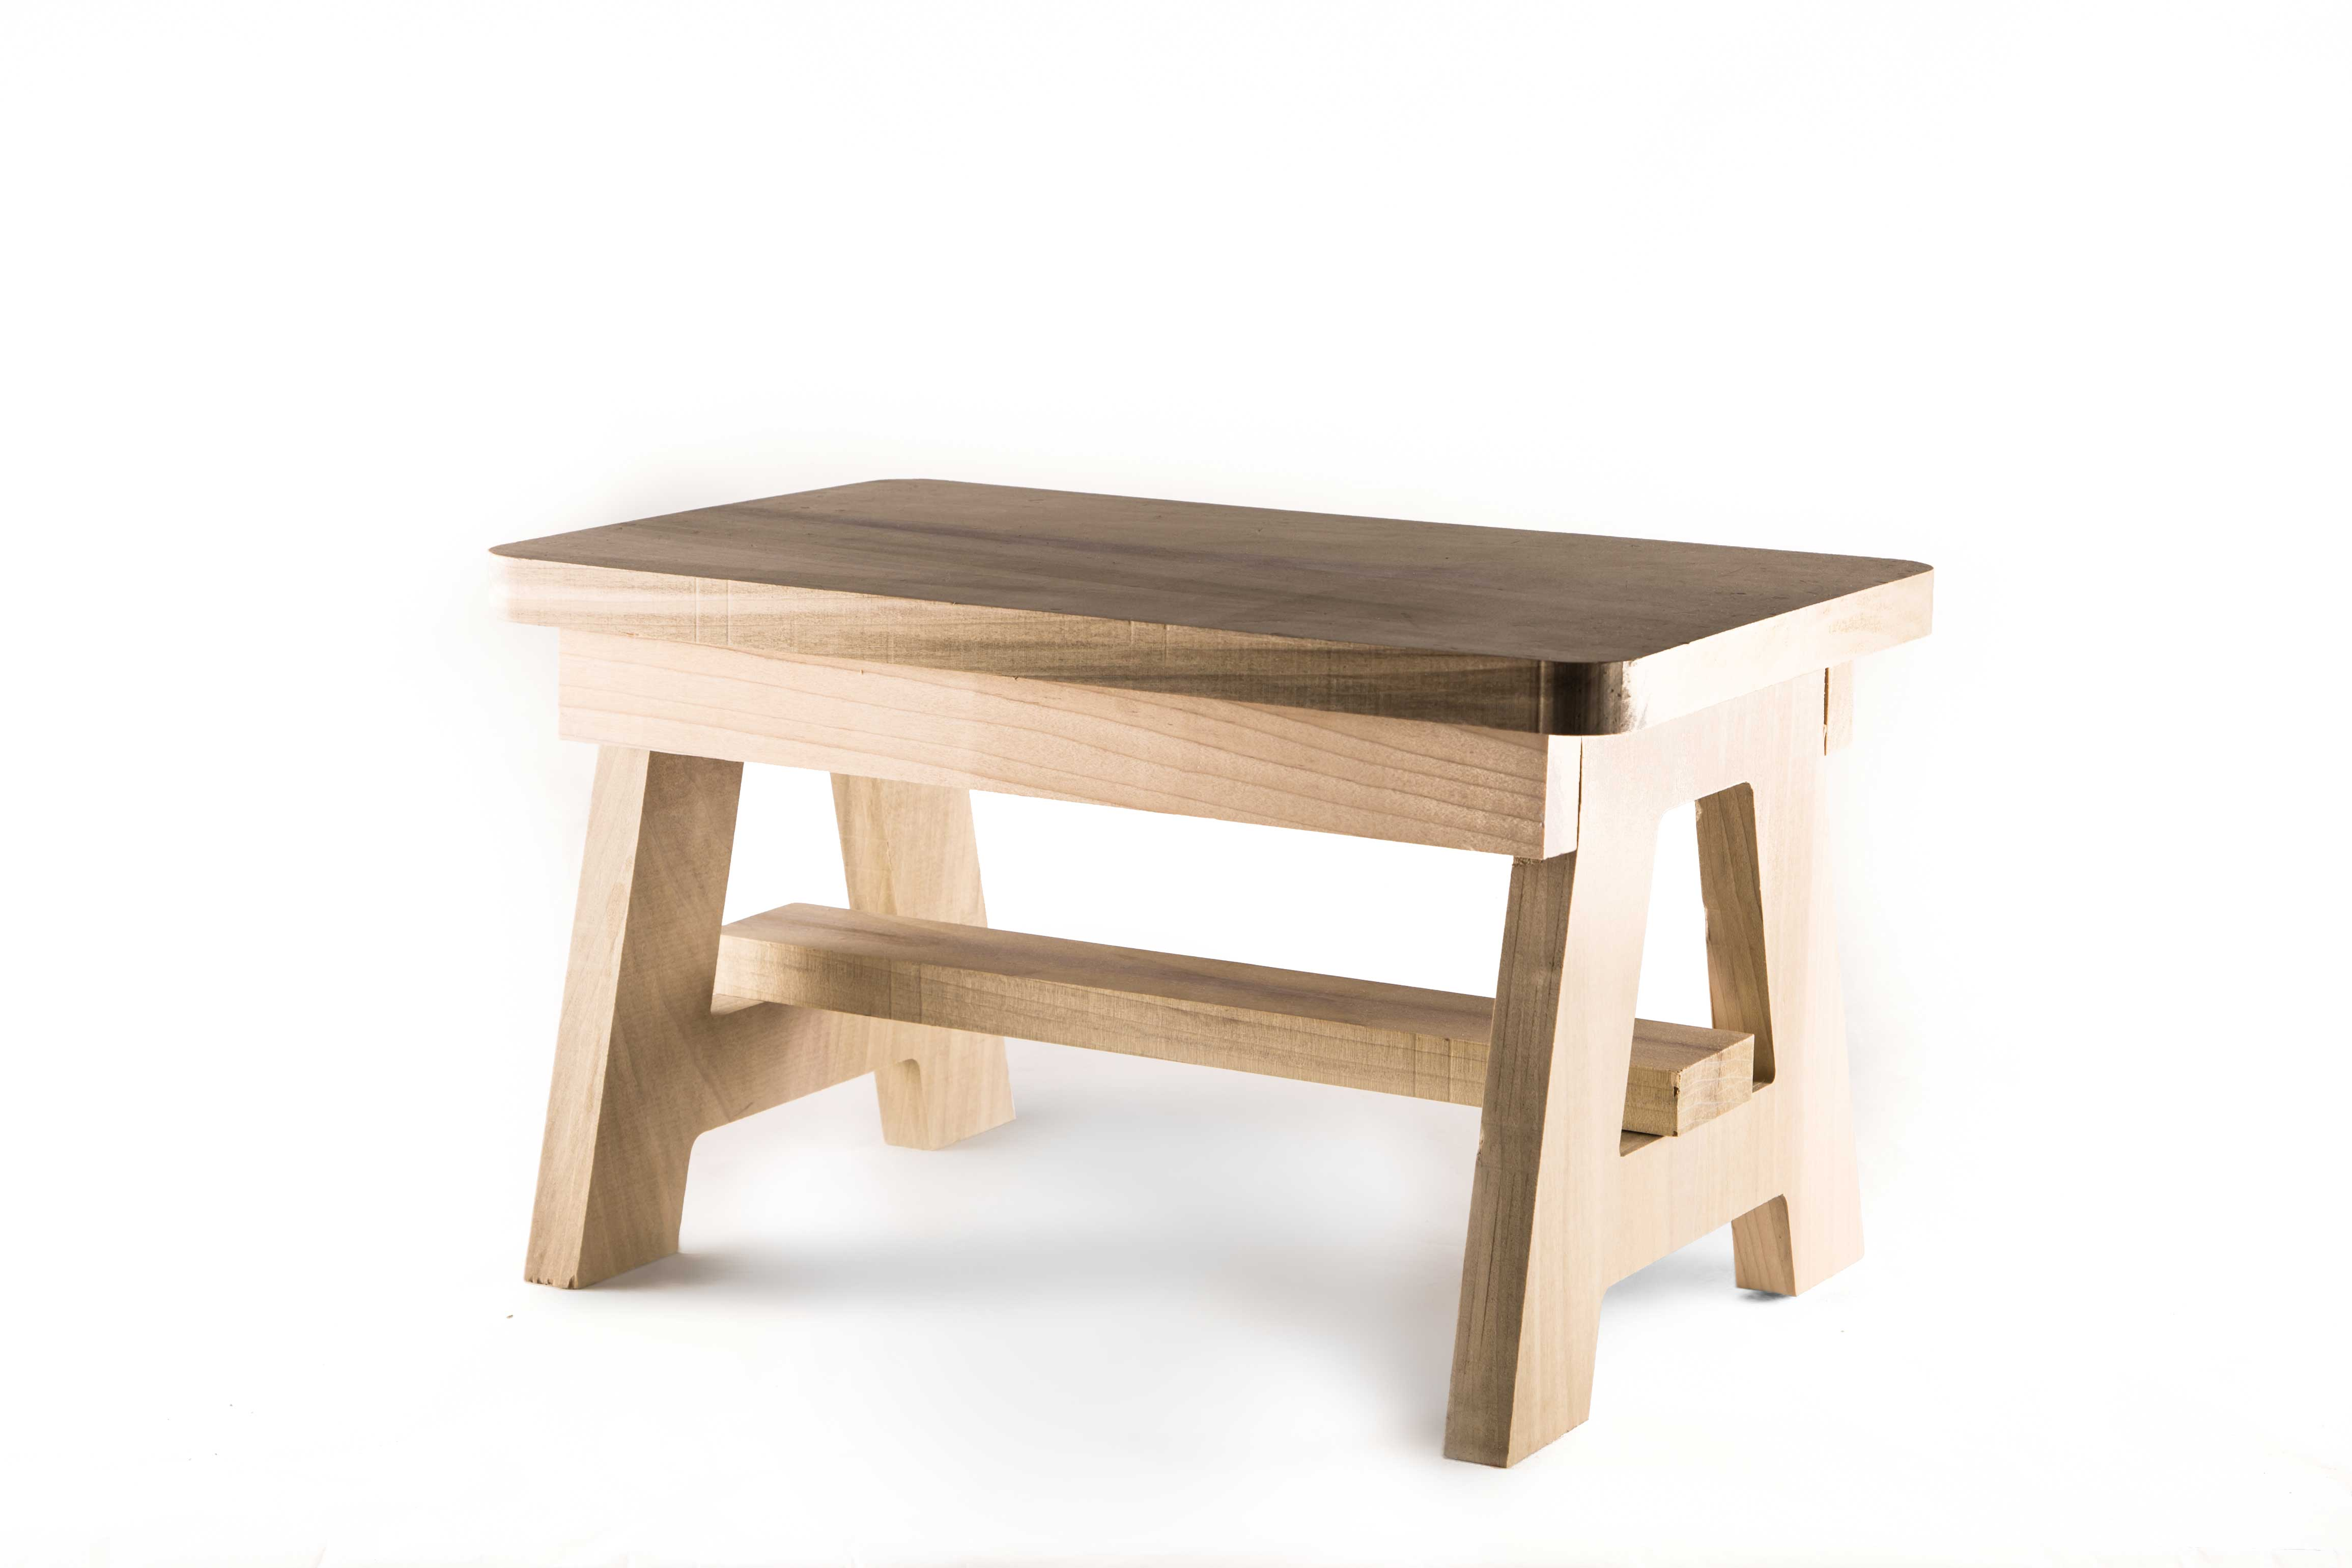 topic related to 6 easy steps to build your own diy coffee table